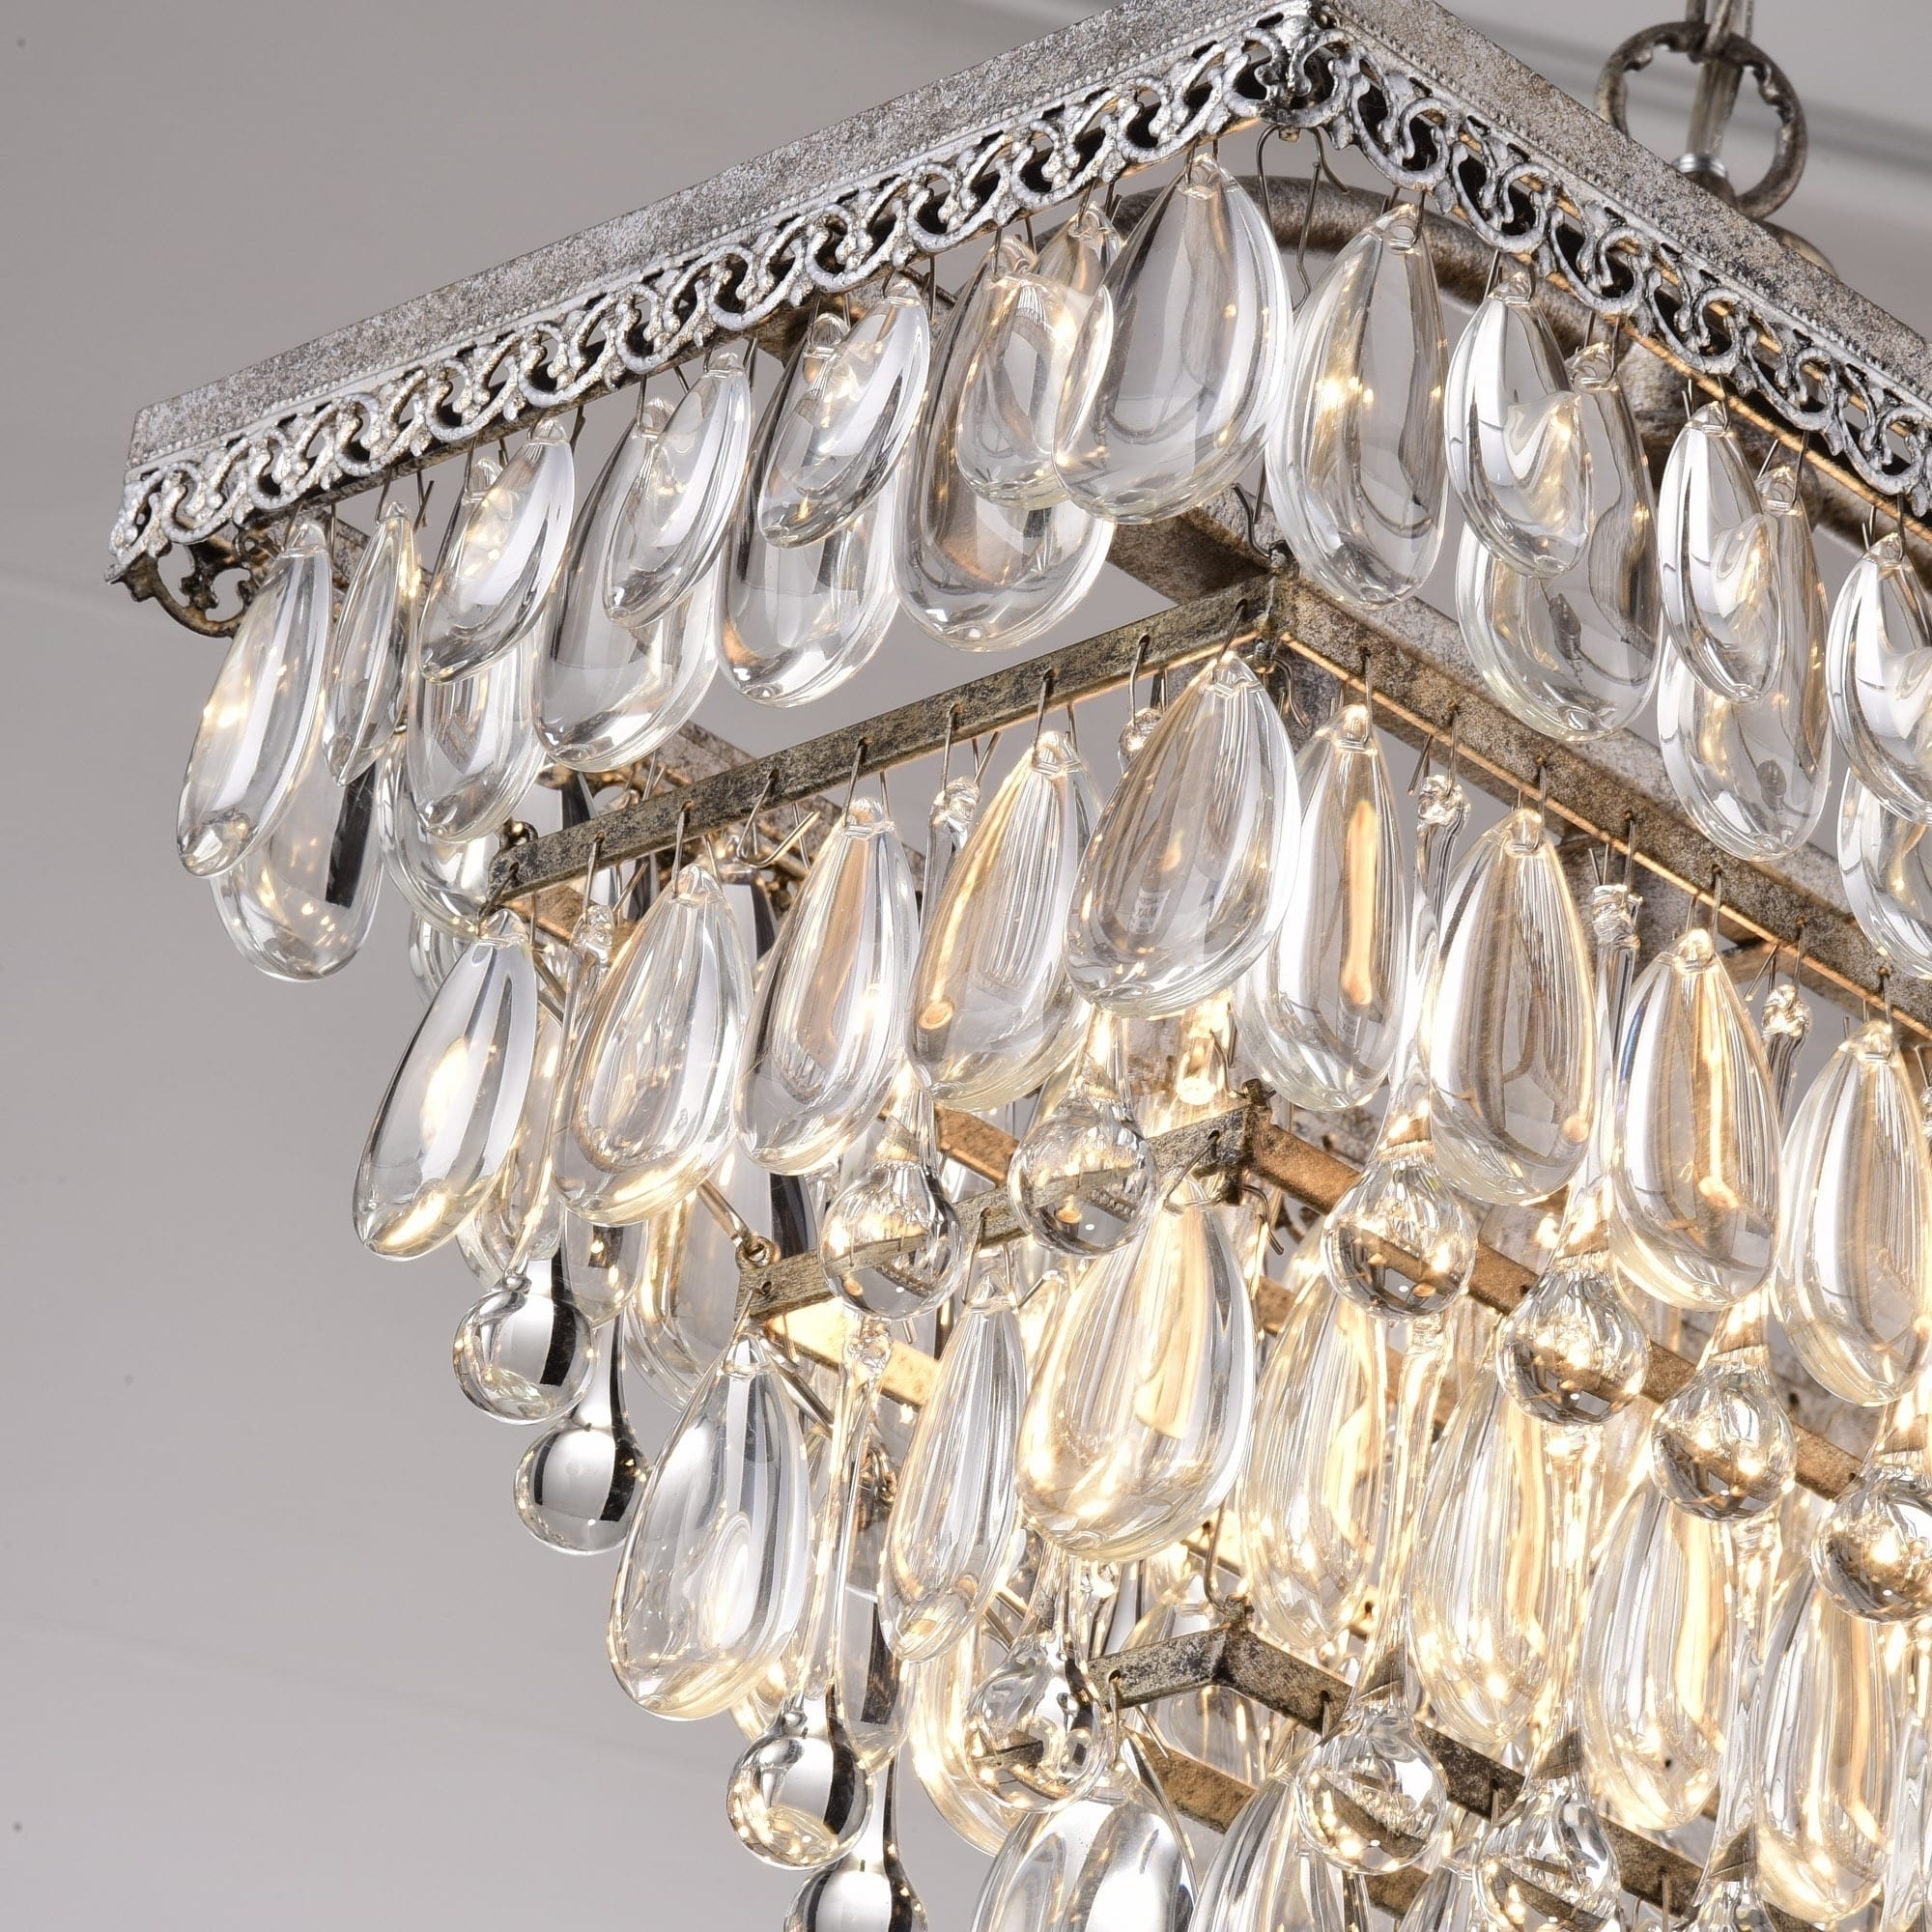 Silver Orchid Taylor Antique Silver 6 Light Rectangular Glass With Preferred Glass Droplet Chandelier (View 15 of 20)